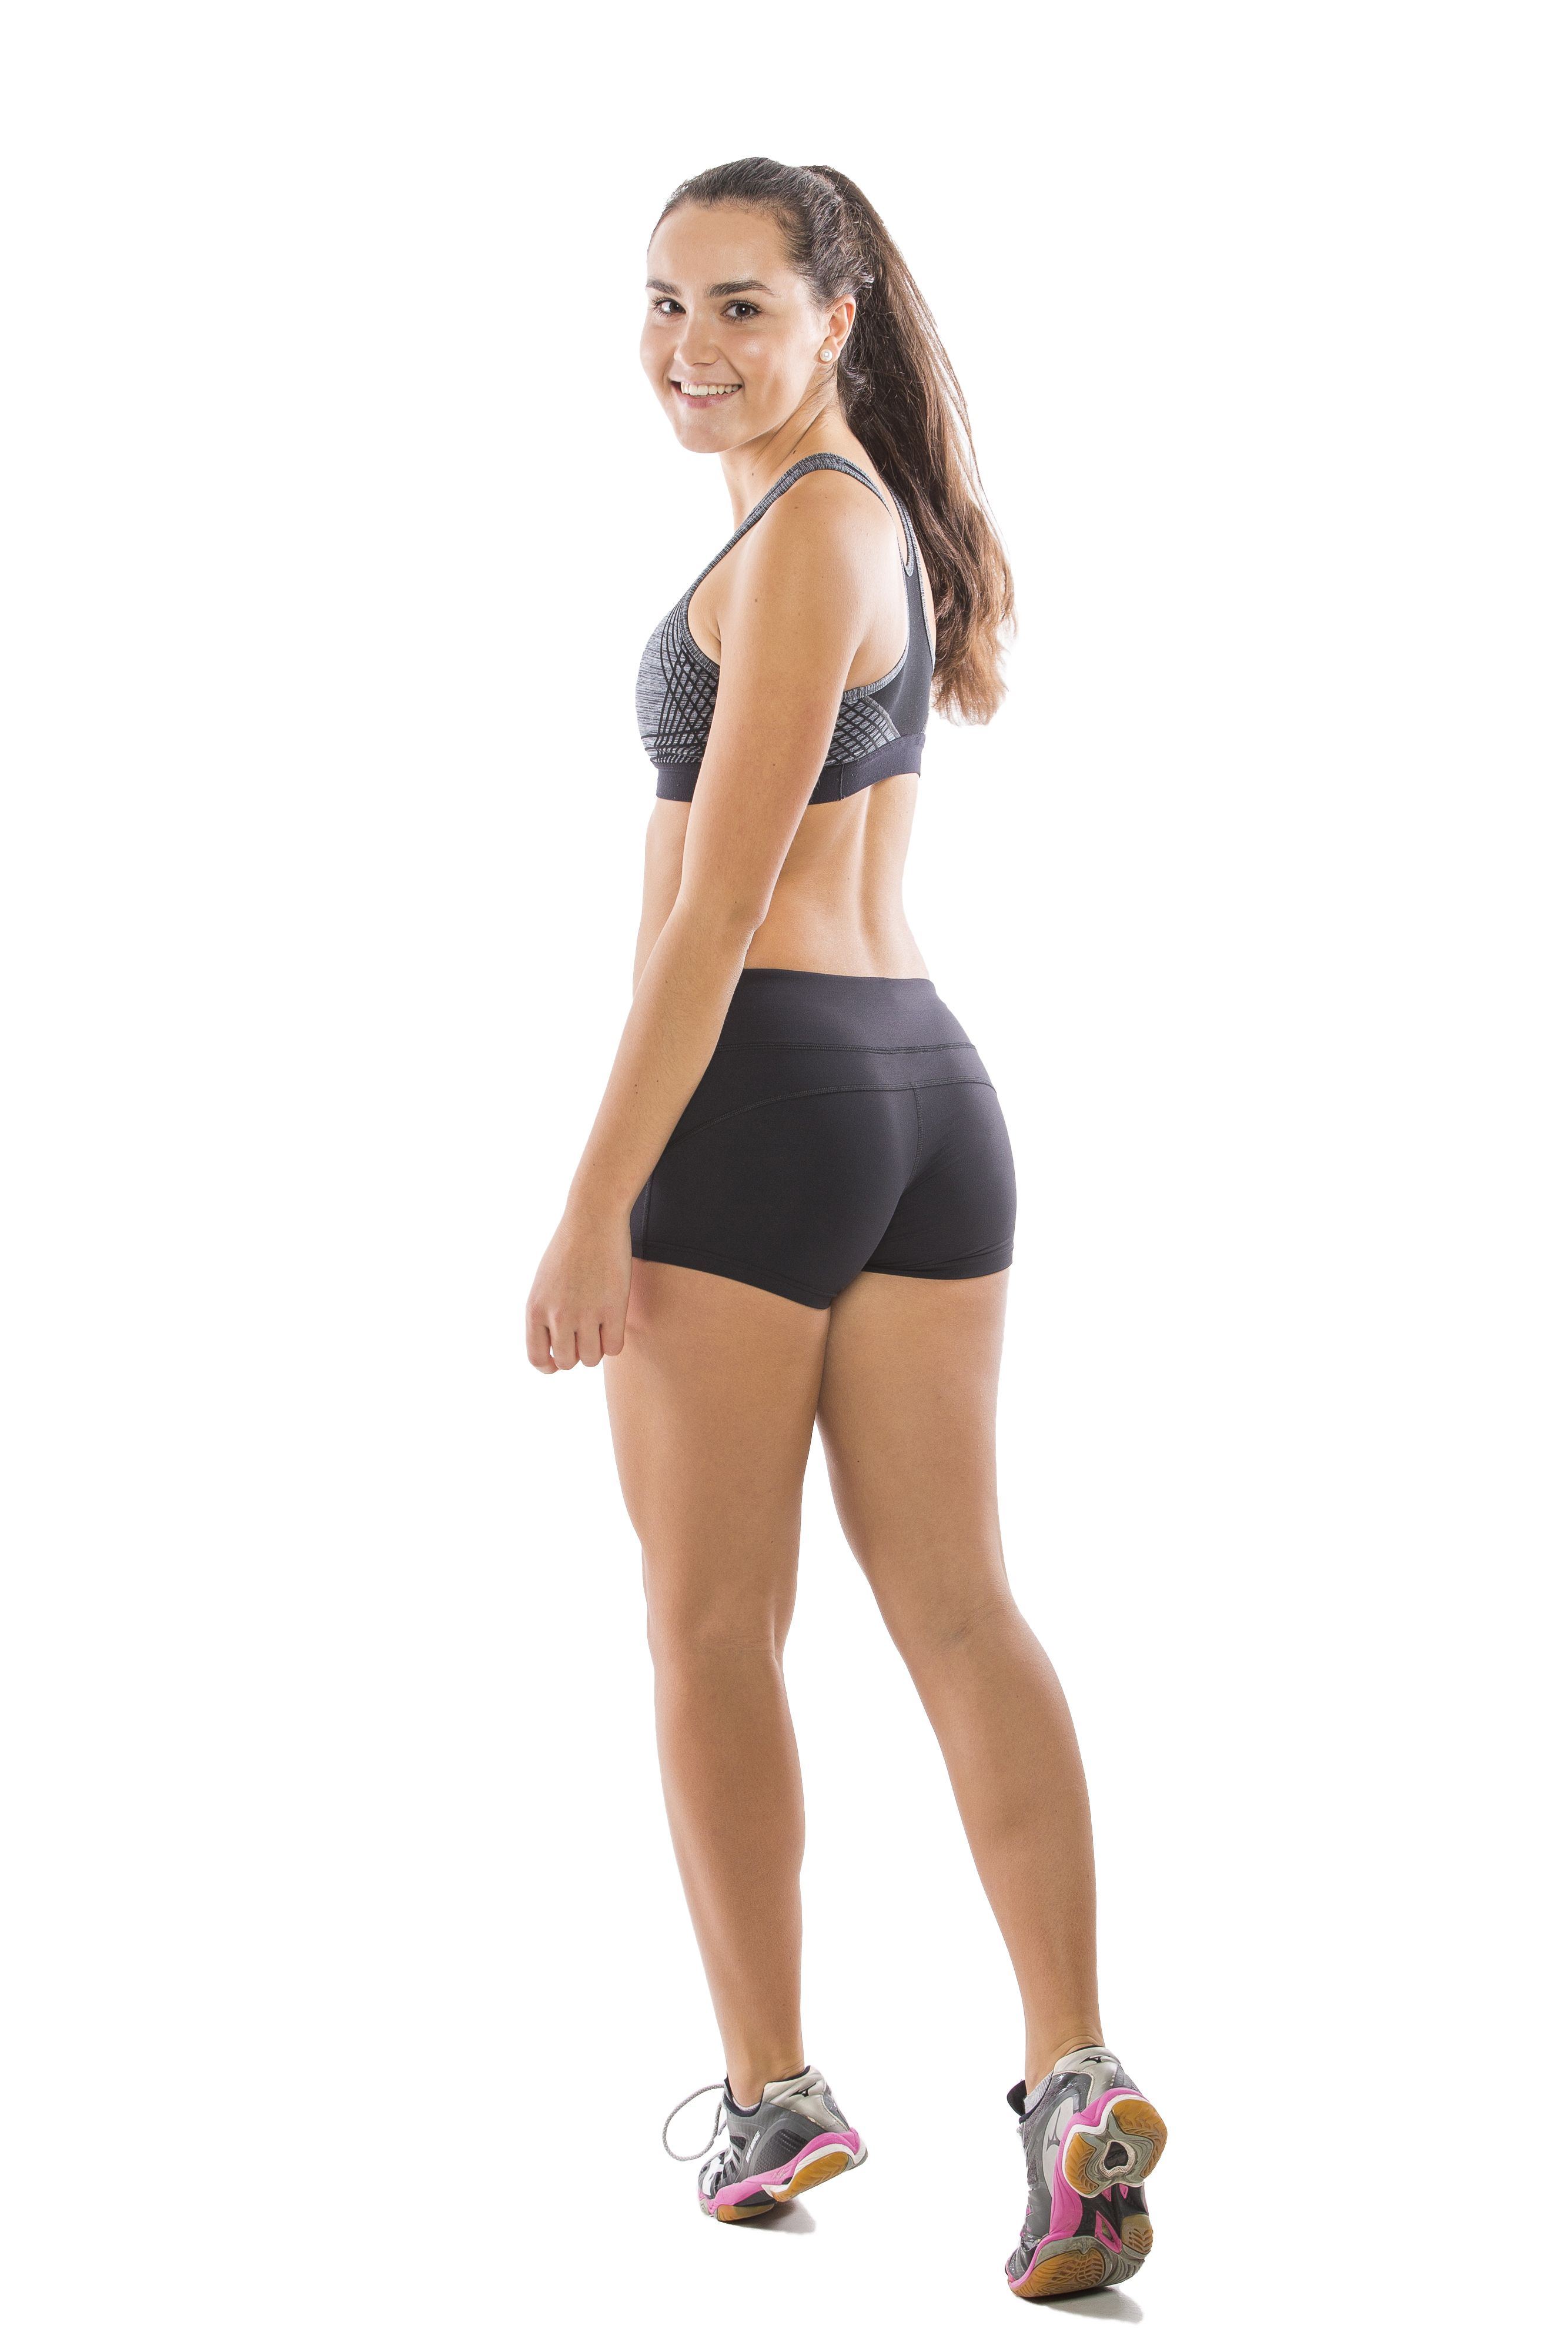 You Can Wear It Without Underpants Volleyball Shorts Volleyball Shorts